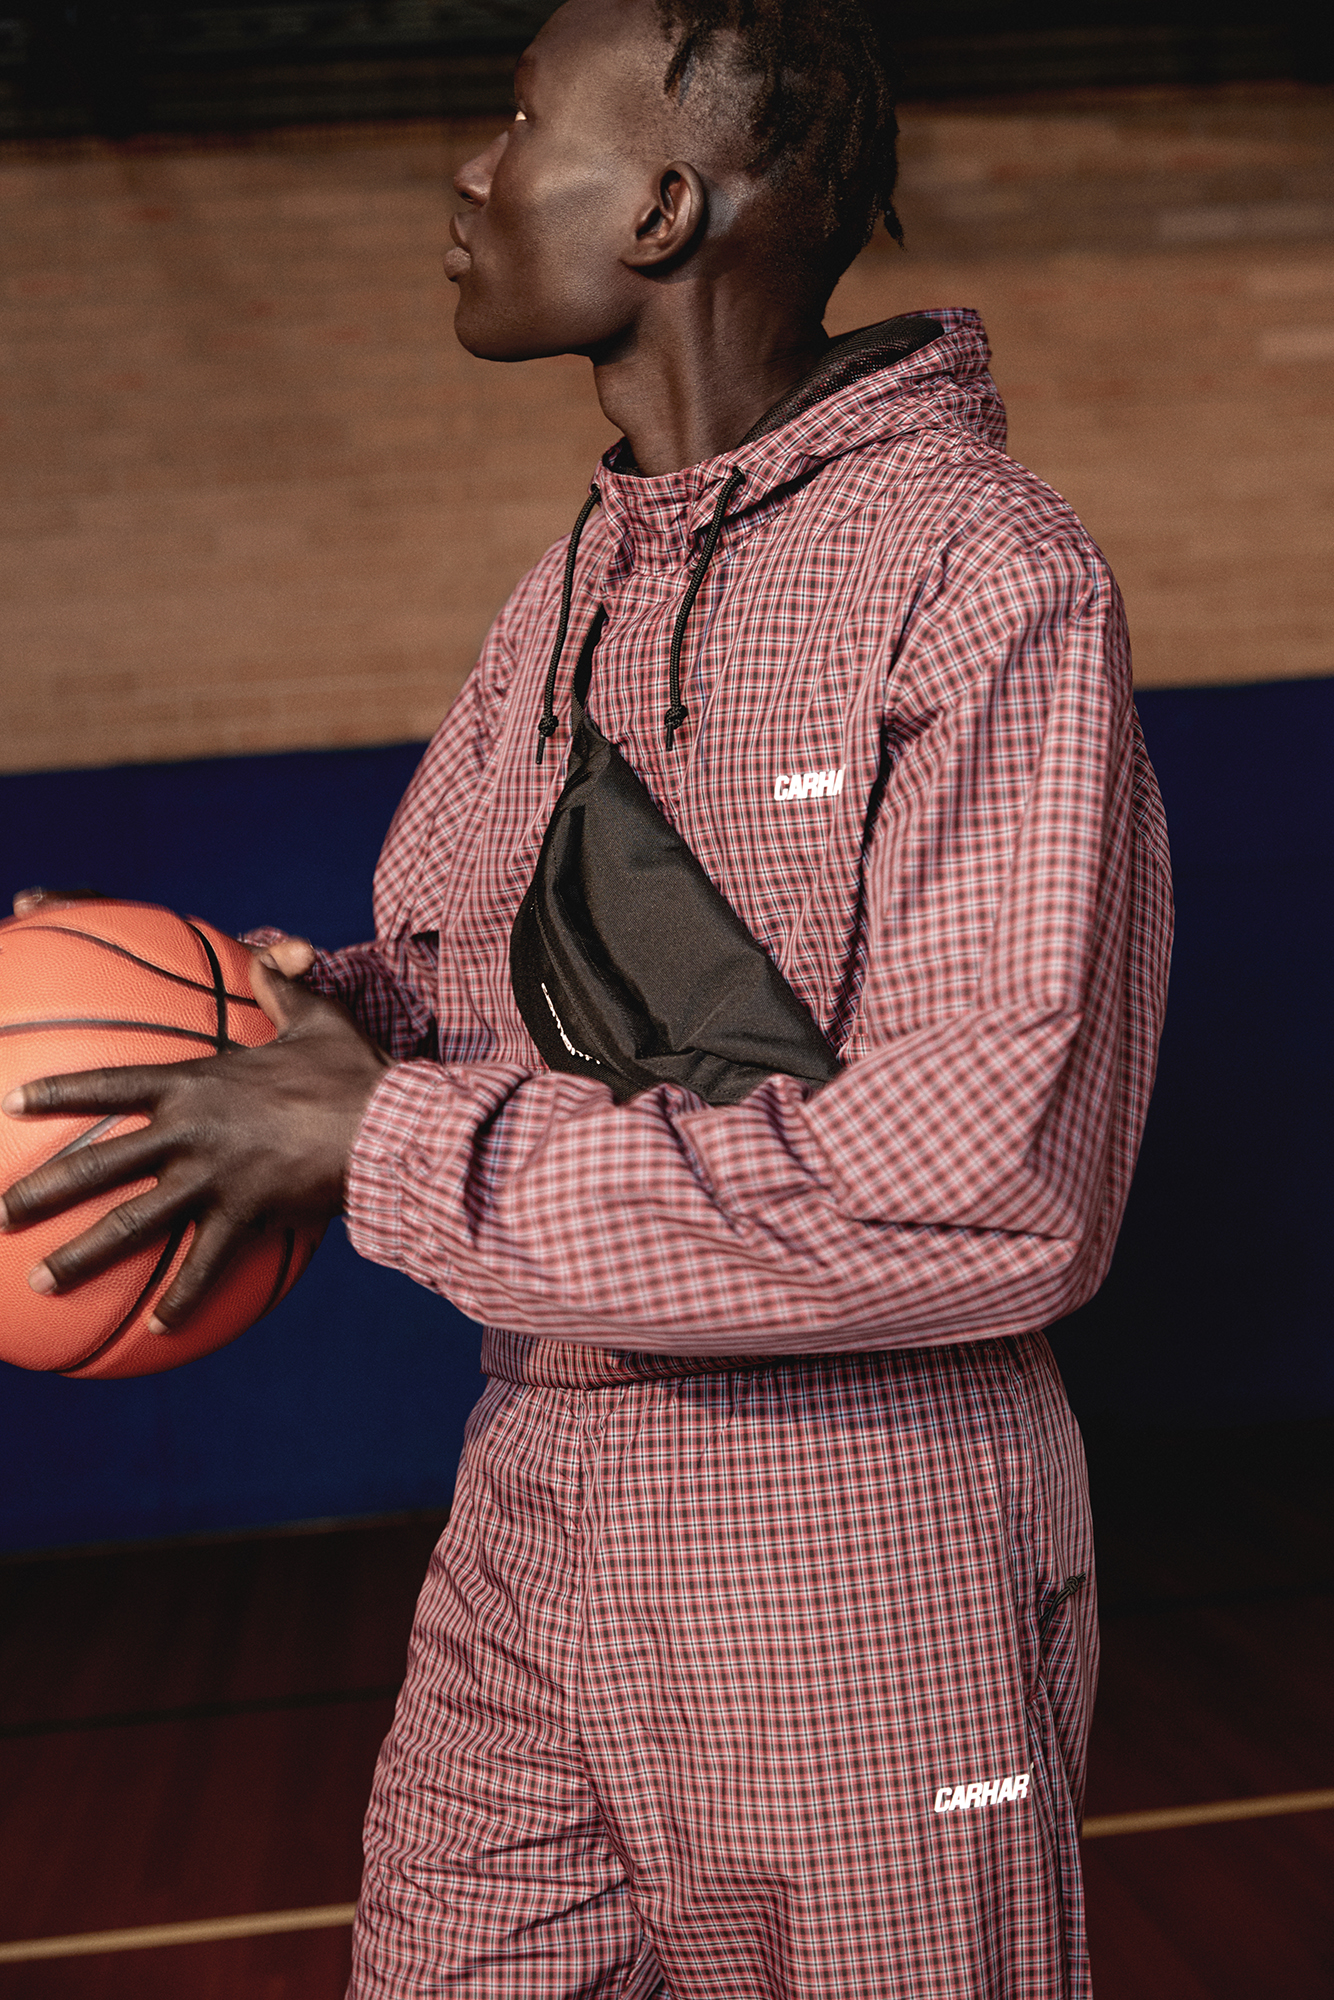 Gabriel Khamis wears Carhartt for The Iconic sport campaign